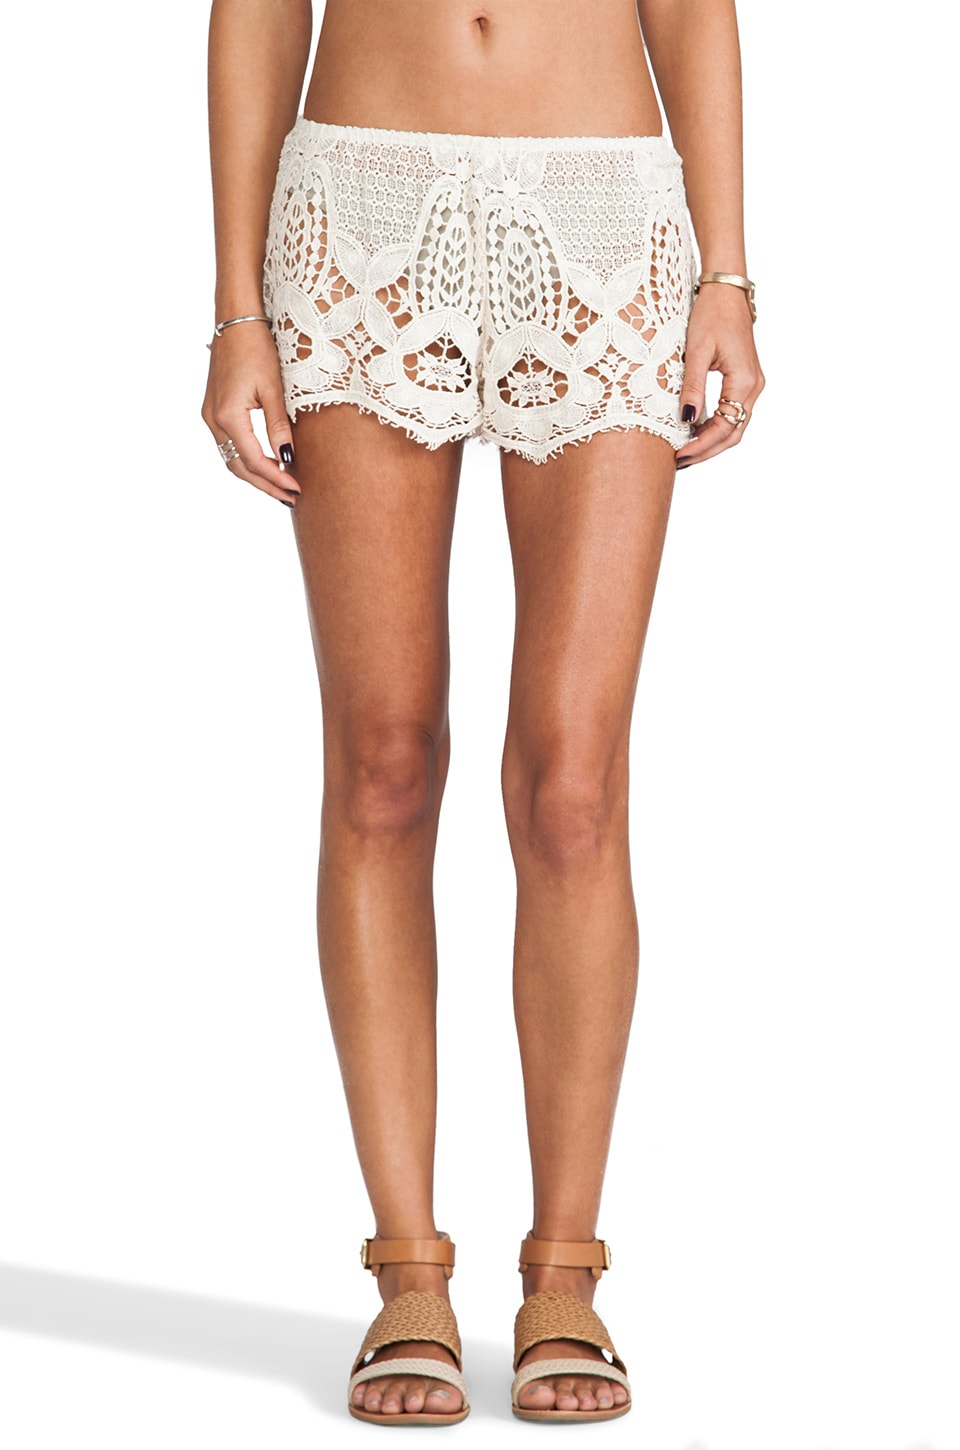 eberjey Sam Shorts in Natural